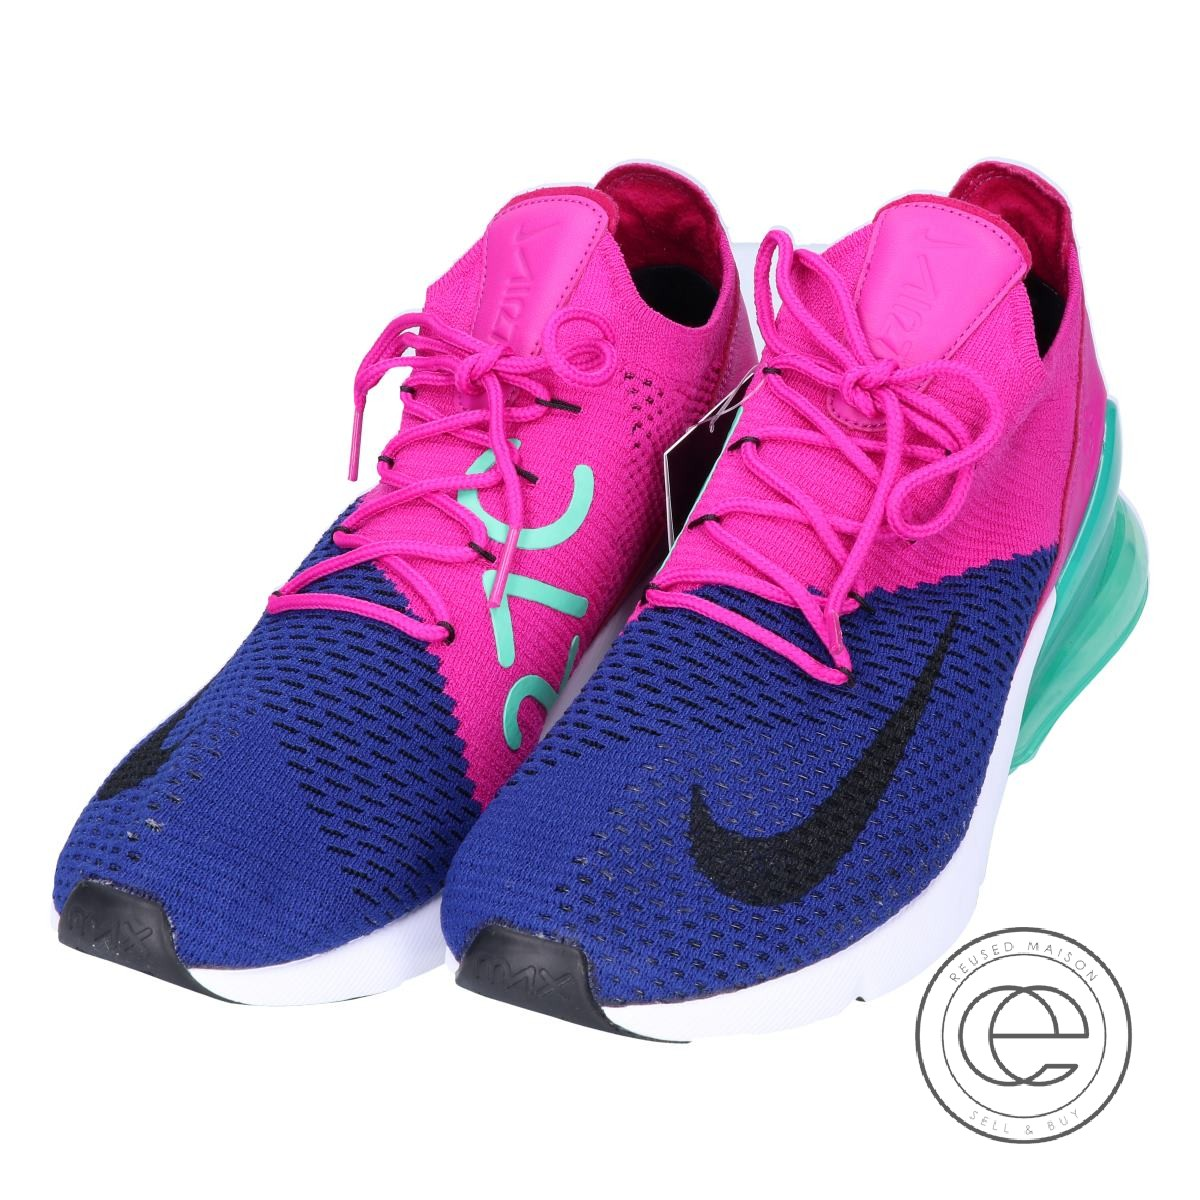 pretty nice c1b4a a2f25 NIKE Nike AO1023-401 AIR MAX 270 FLYKNIT Air Max 270 fried food knit  sneakers 27.5 Deep Royal Blue/Black-Fuchsia Flash men